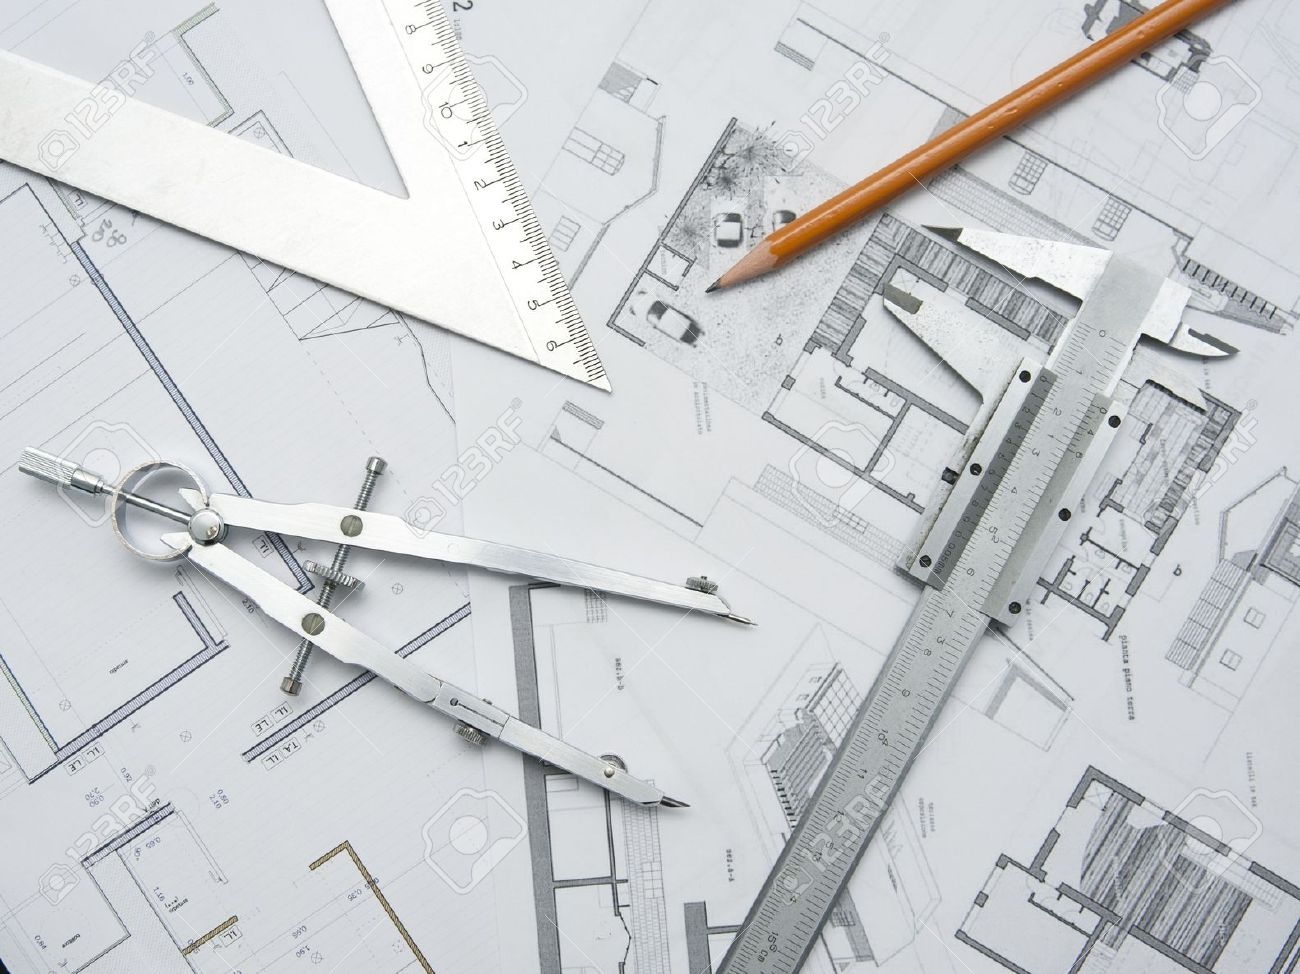 architecture drawing images stock pictures royalty free architecture drawing tools and papers for planning an architecture project stock photo